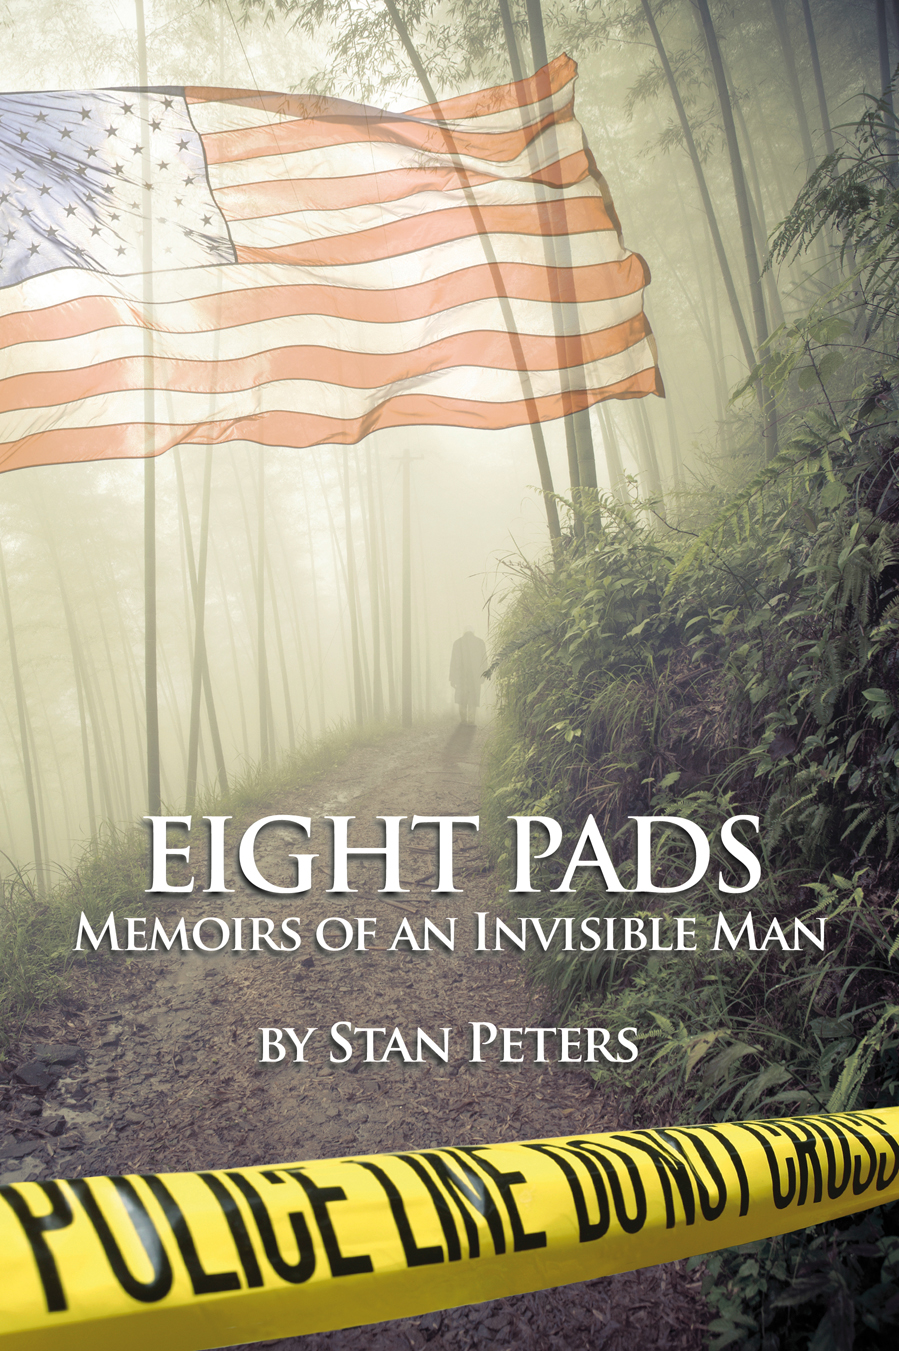 Eight Pads by Stan Peters